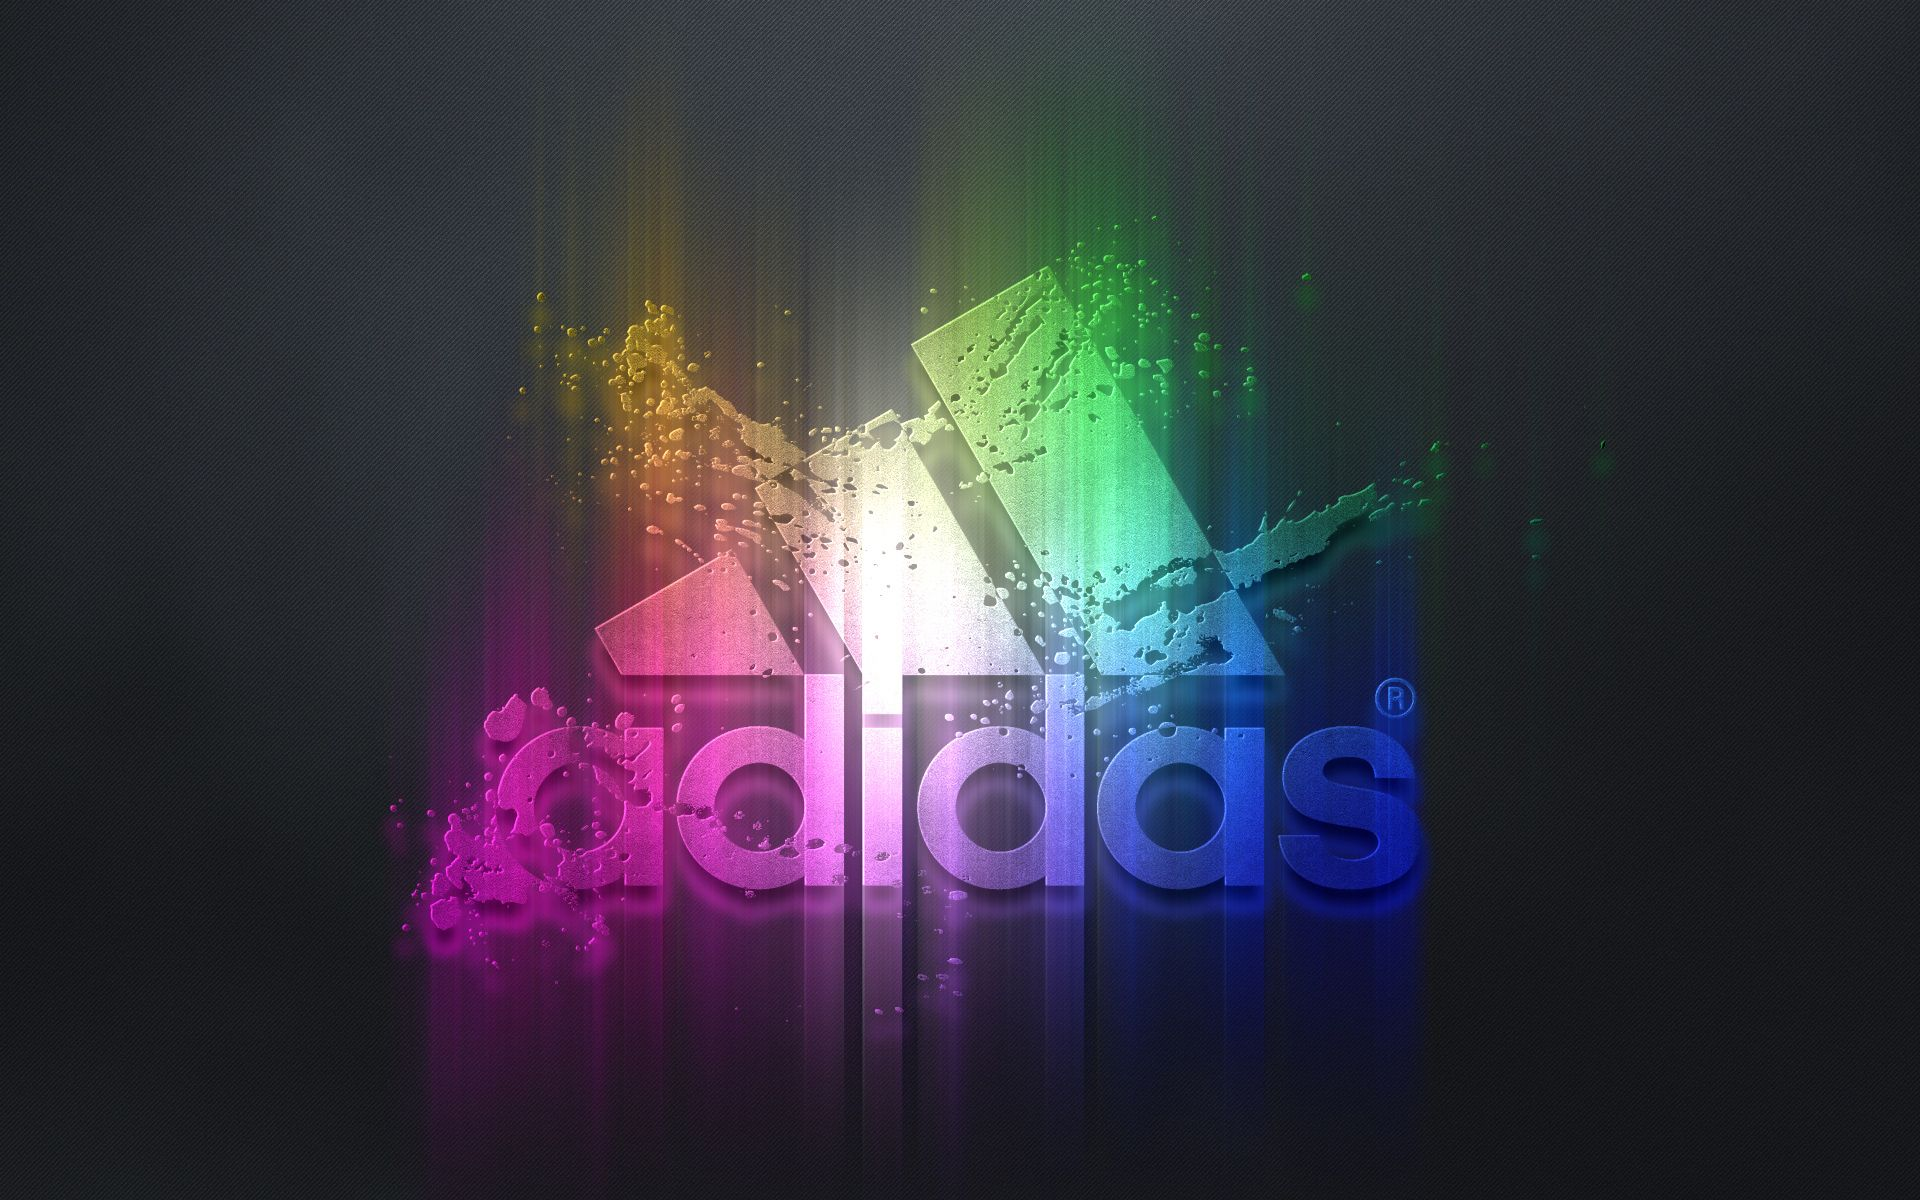 1920x1200 Free Download Best Adidas Backgrounds, 30 4K Ultra HD Wallpapers